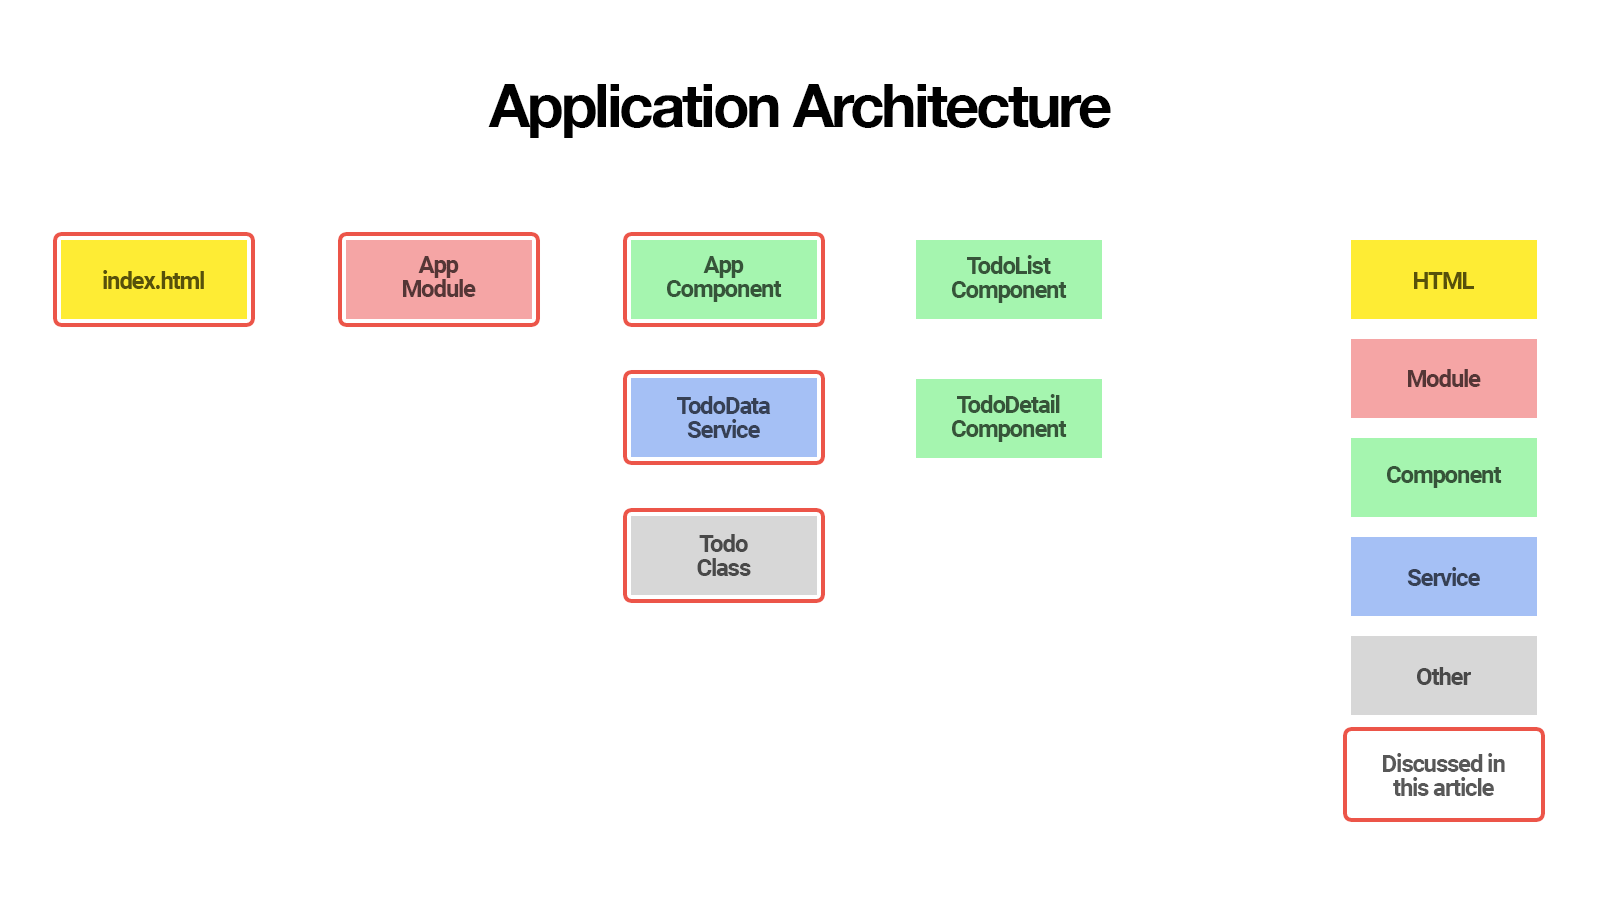 Angular CLI: Application Architecture of Finished Todo Application